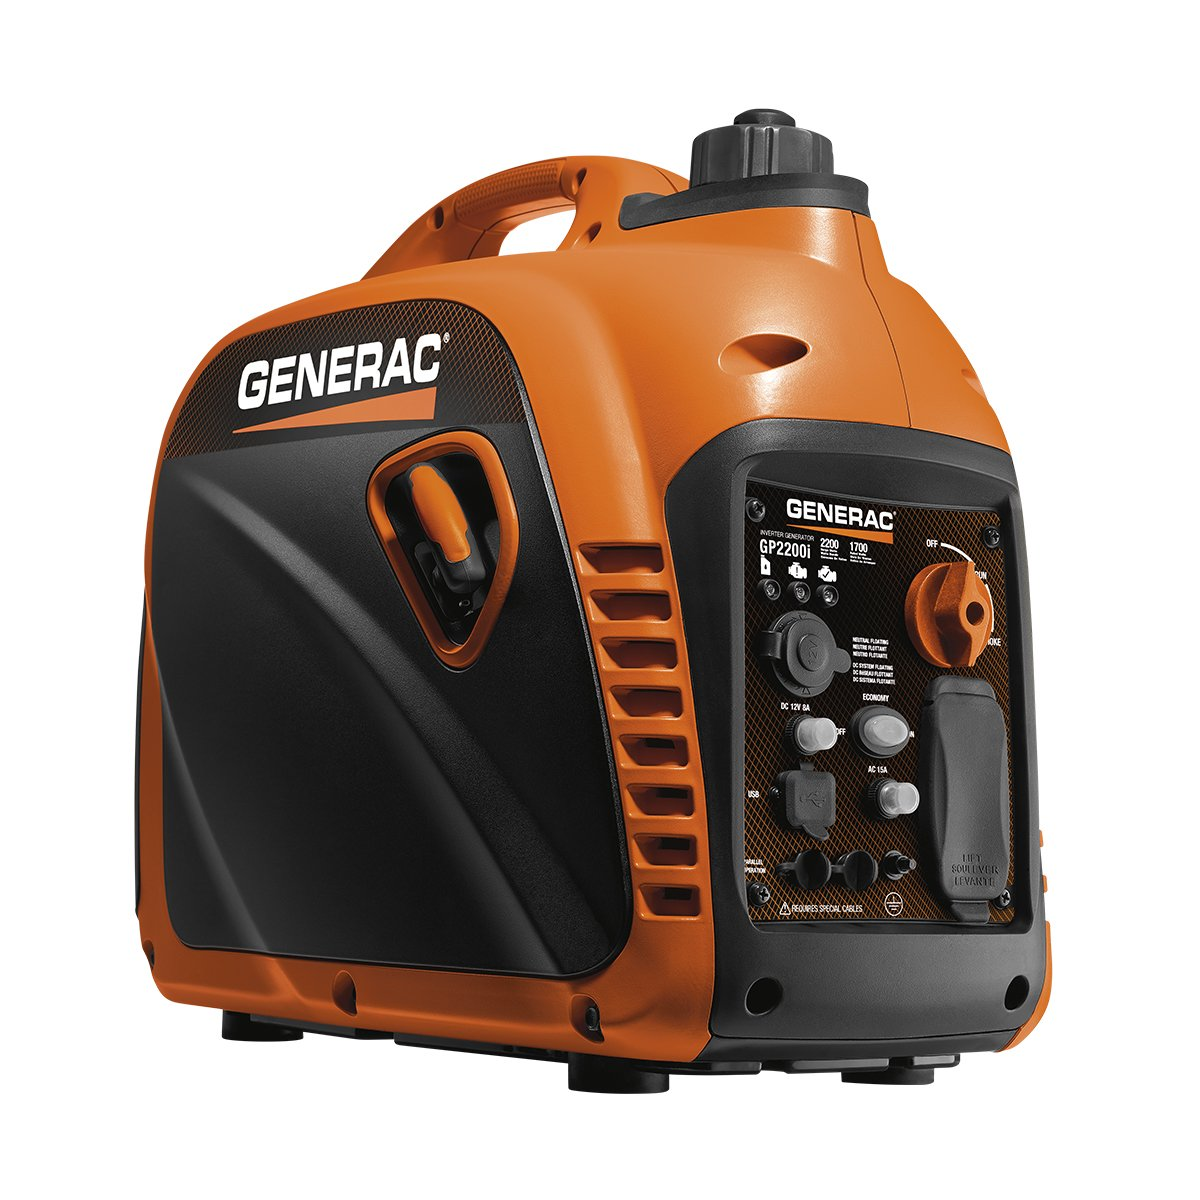 Generac 7117 GP2200i 2200 Watt Portable Inverter Generator - Parallel Ready and CSA/CARB Compliant product image